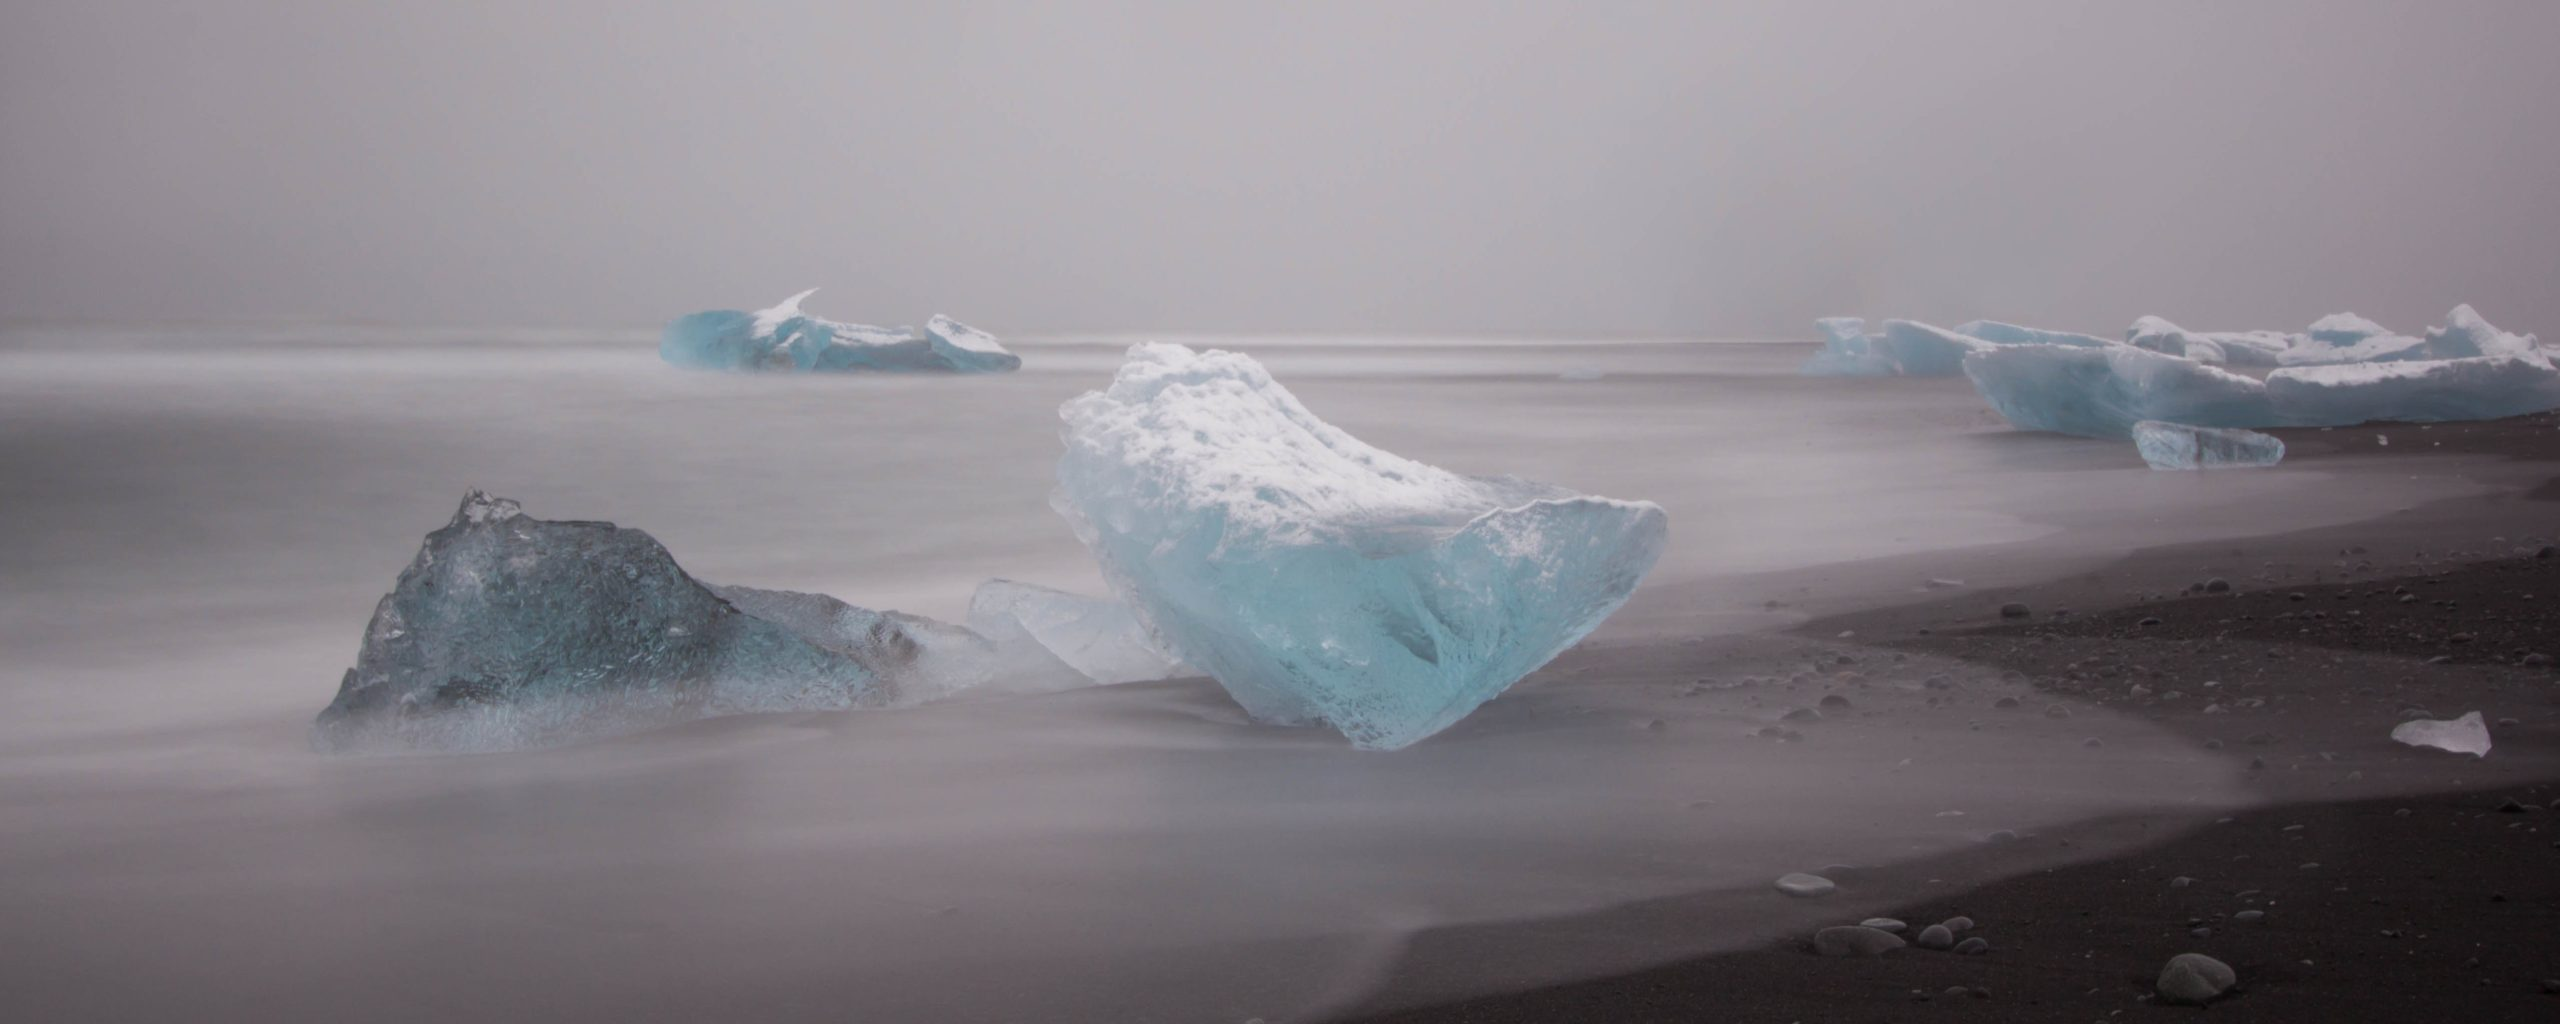 Download Iceland Glacial Icebergs On A Black Volcanic Sand Beach And A Dusting Of Snow Stujophoto  Wallpaper